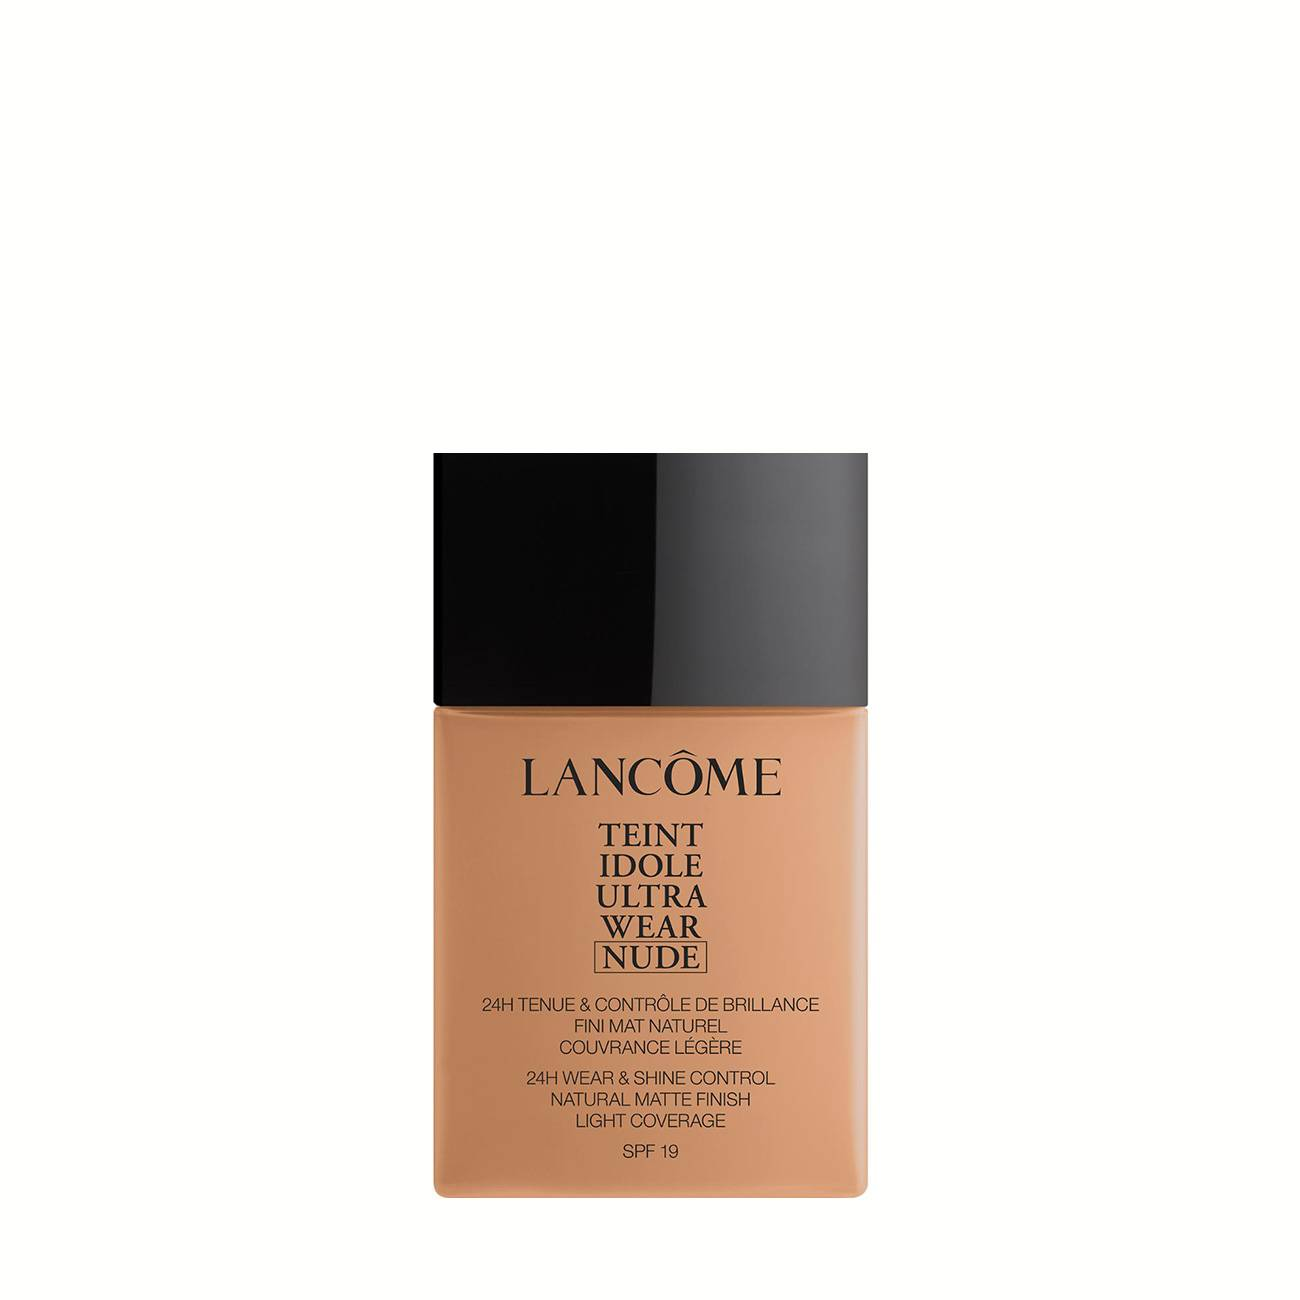 Teint Idole Ultra Wear Nude 035 40ml Lancôme imagine 2021 bestvalue.eu